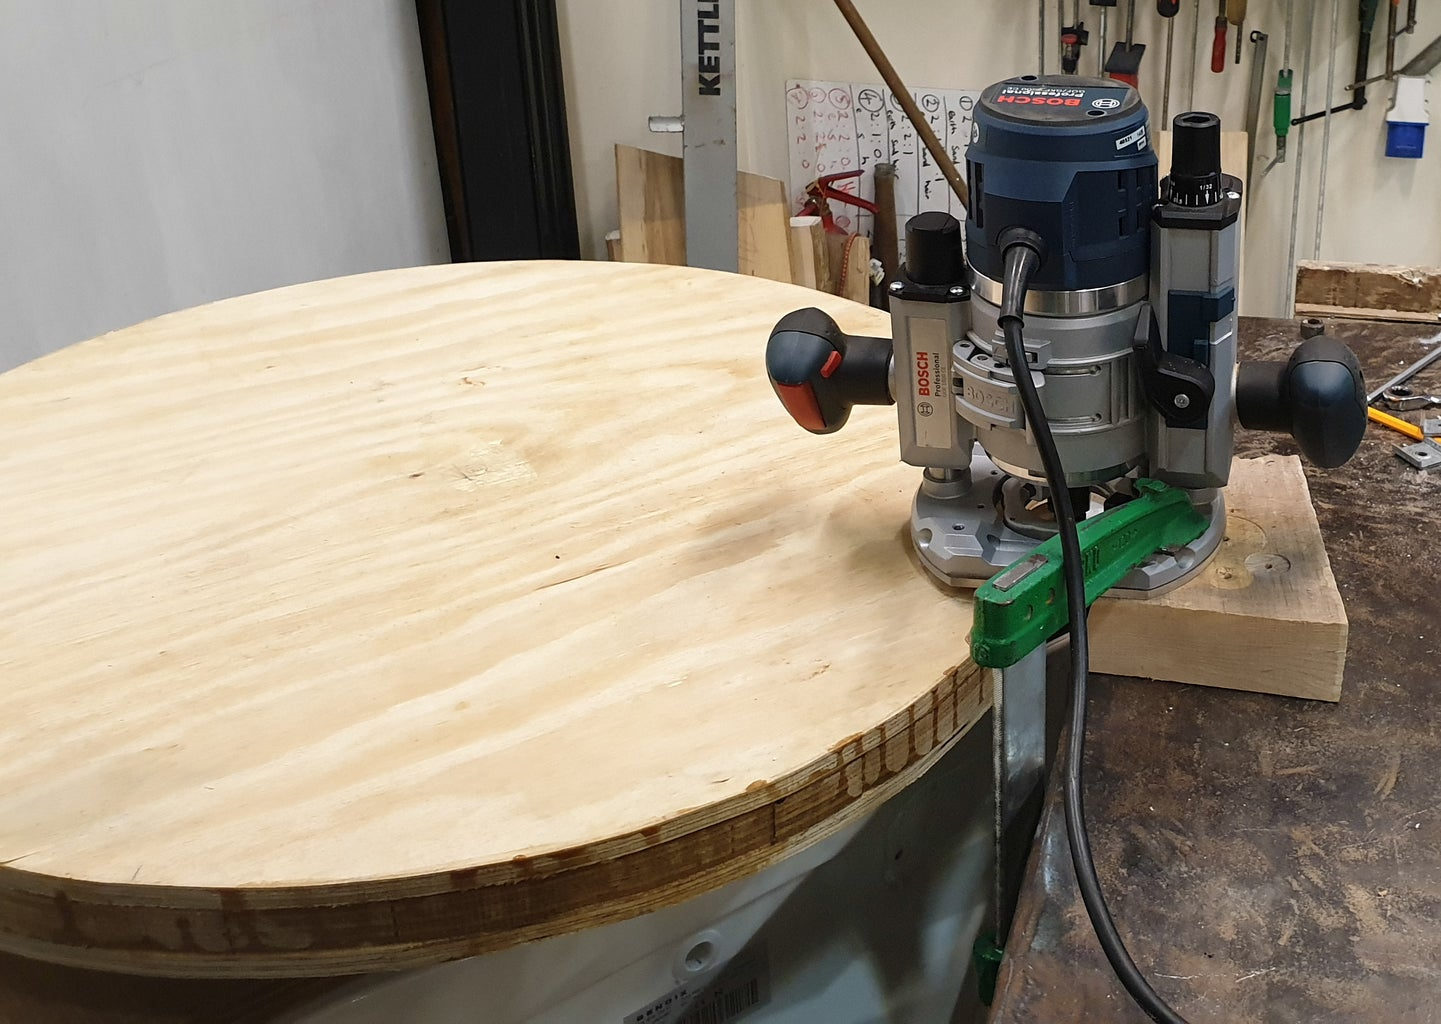 Truing the Turntable